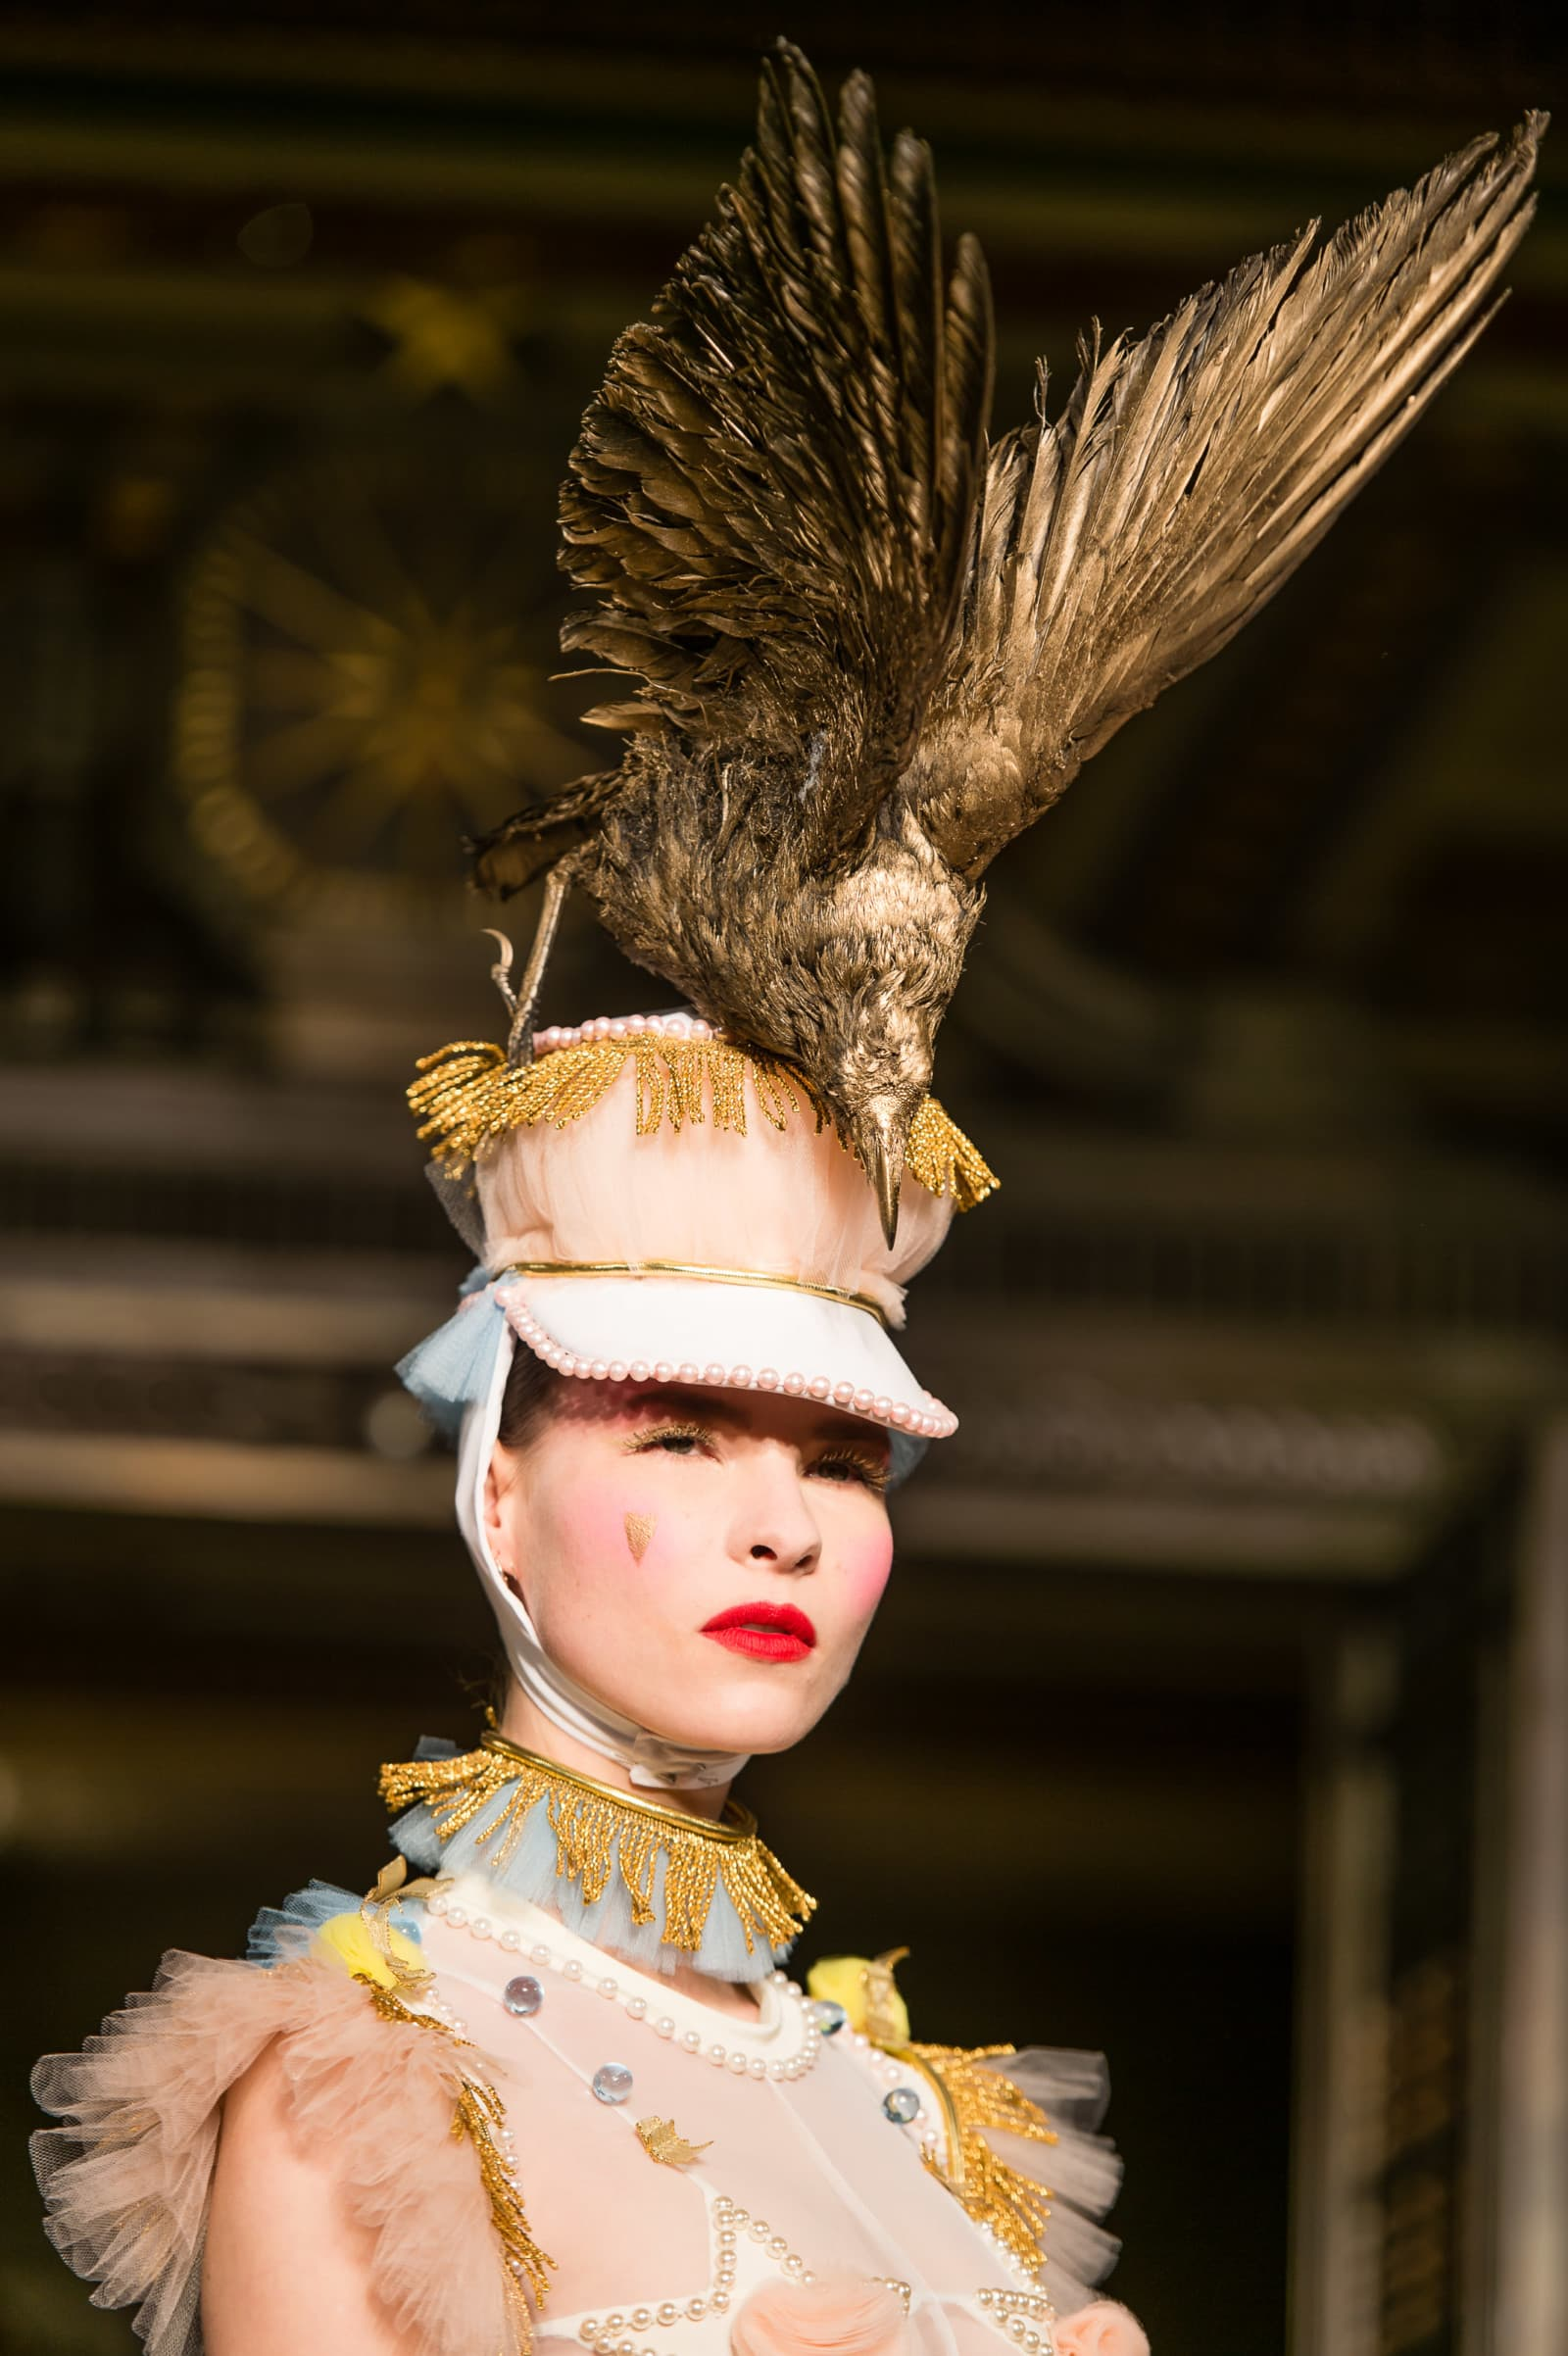 pam-hogg-02-london-fashion-week-freelance-photographer-richard-isaac-3200